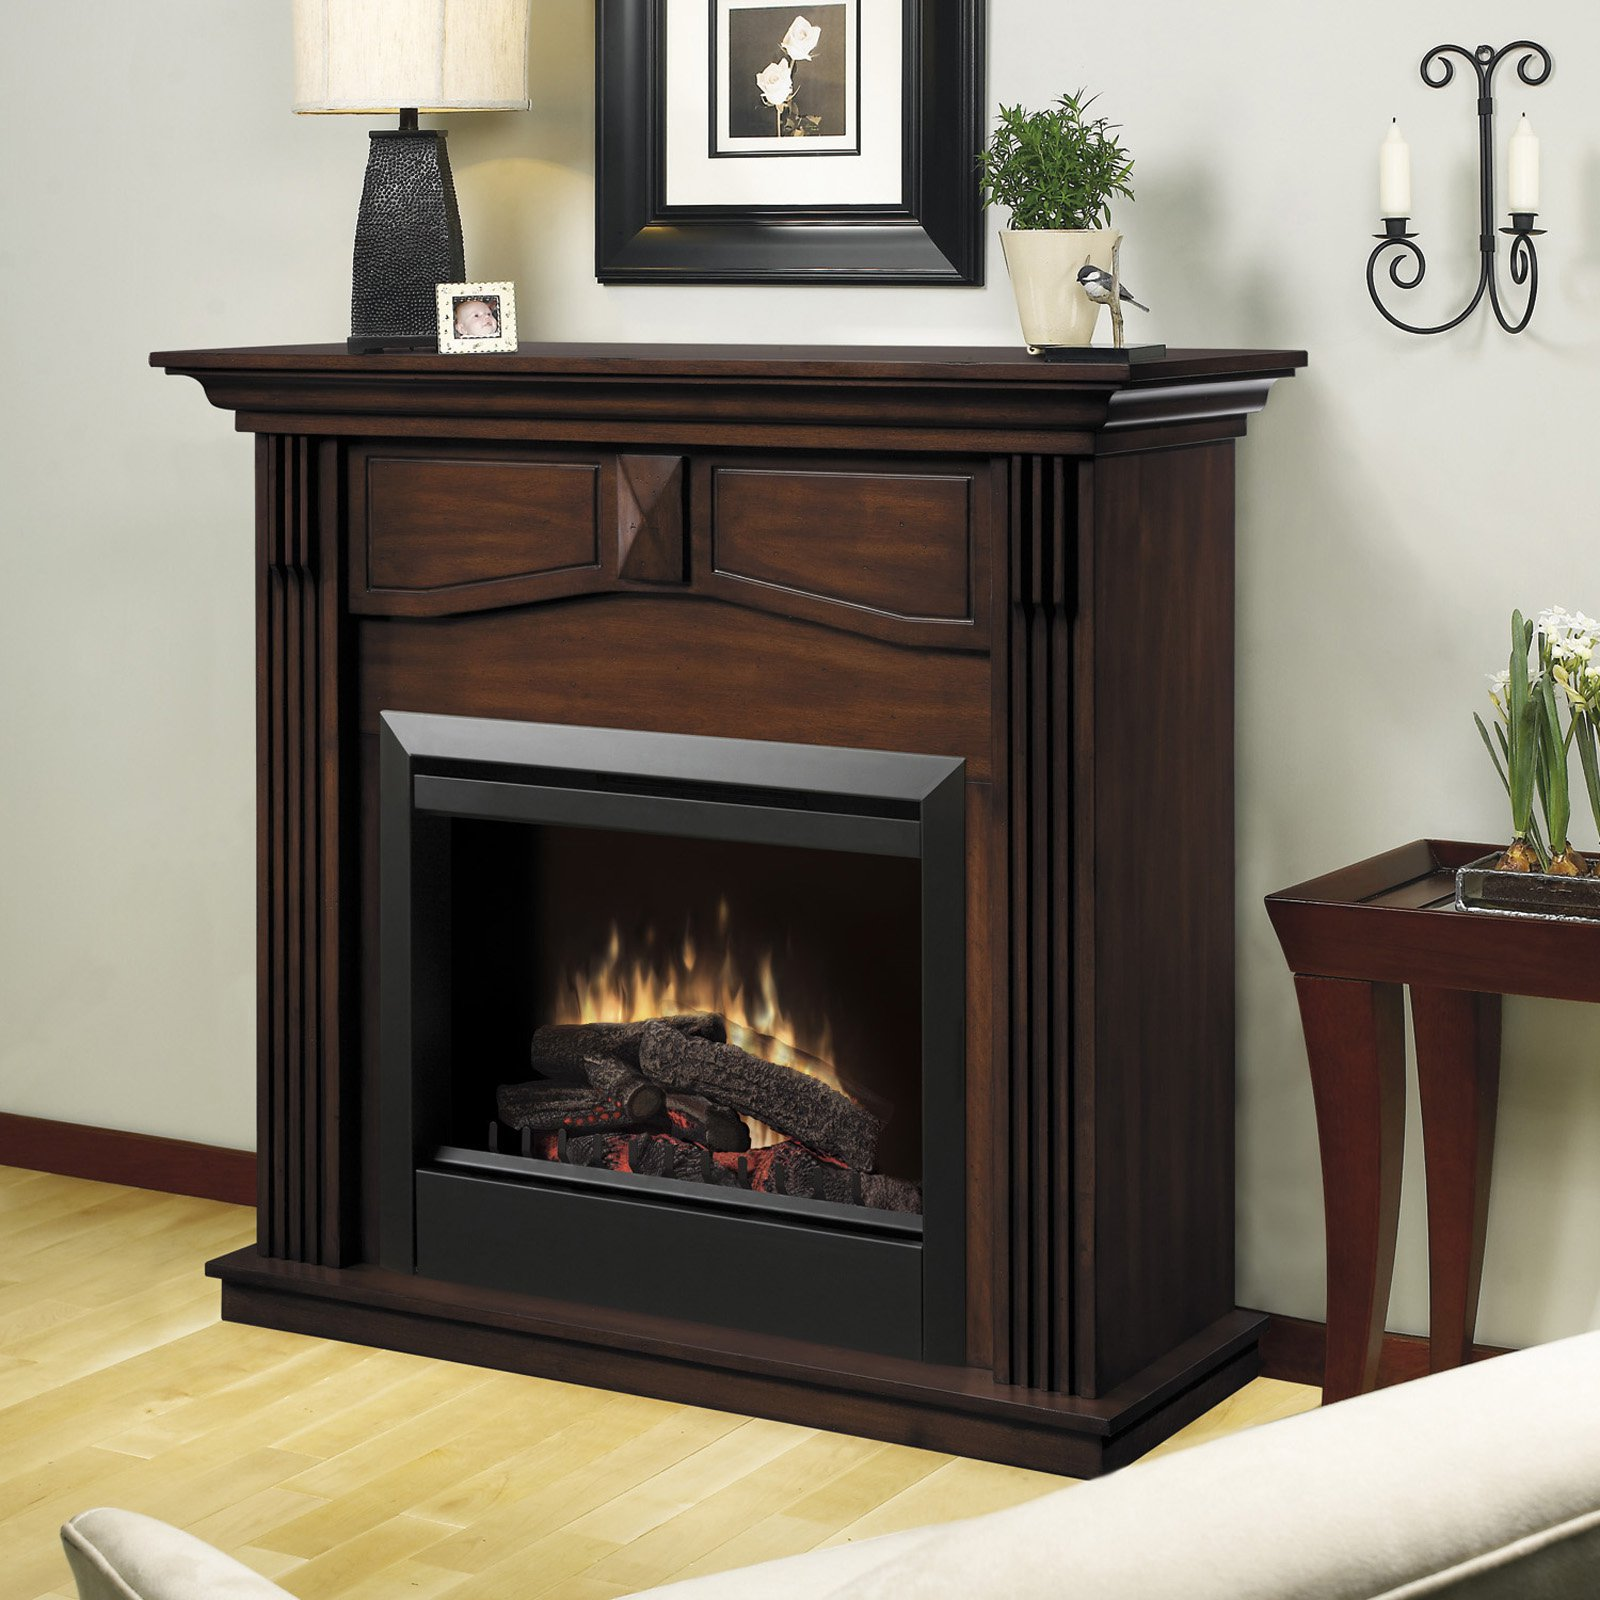 Dimplex Holbrook Mantel Electric Fireplace, Walnut